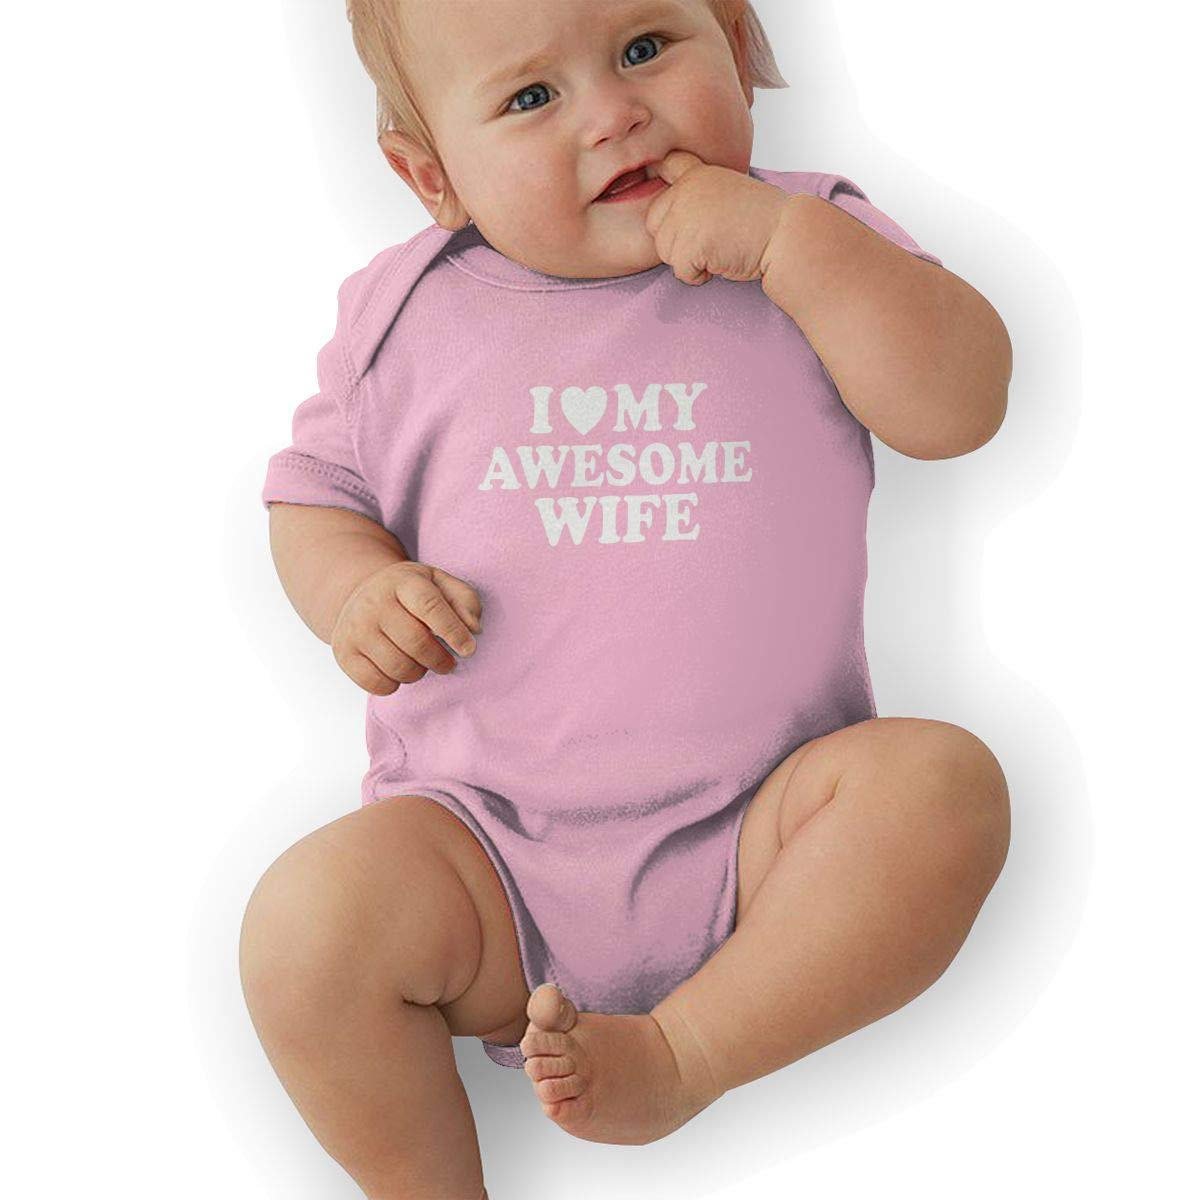 Toddler Baby Girls Bodysuit Short-Sleeve Onesie I Love My Awesome Wife Print Rompers Spring Pajamas